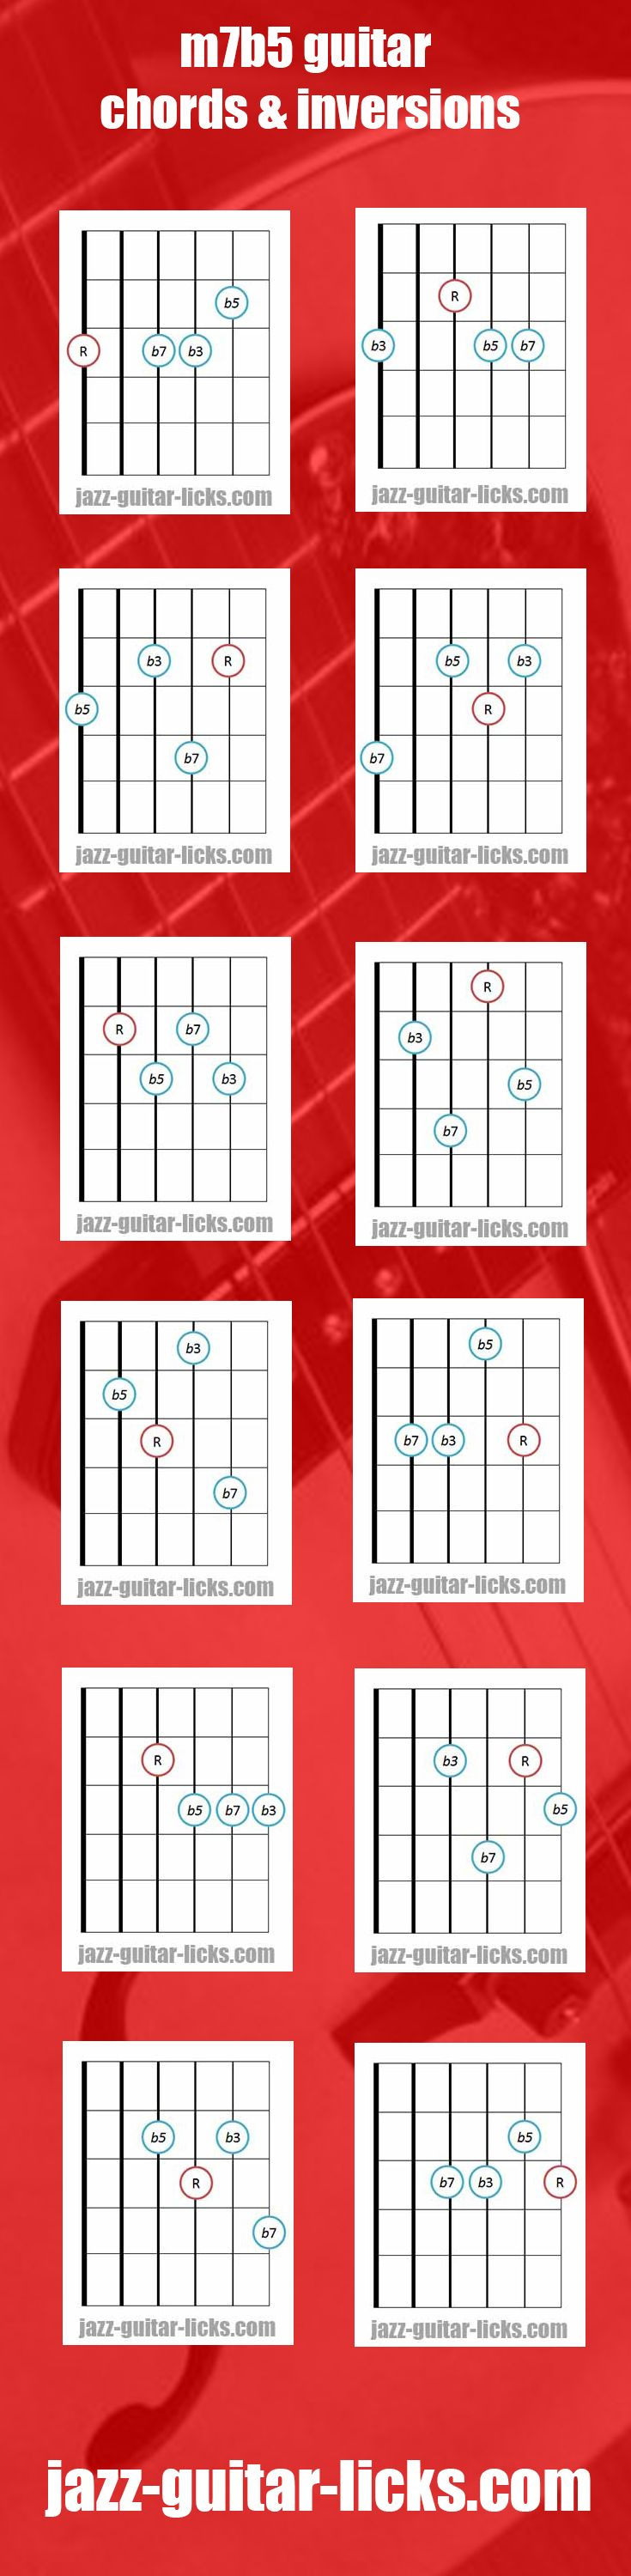 M7b5 Jazz Guitar Chords And Inversions Jazzguitarchords How To 5039s Modern Wiring Style Diagram From Http Wwwmylespaulcom